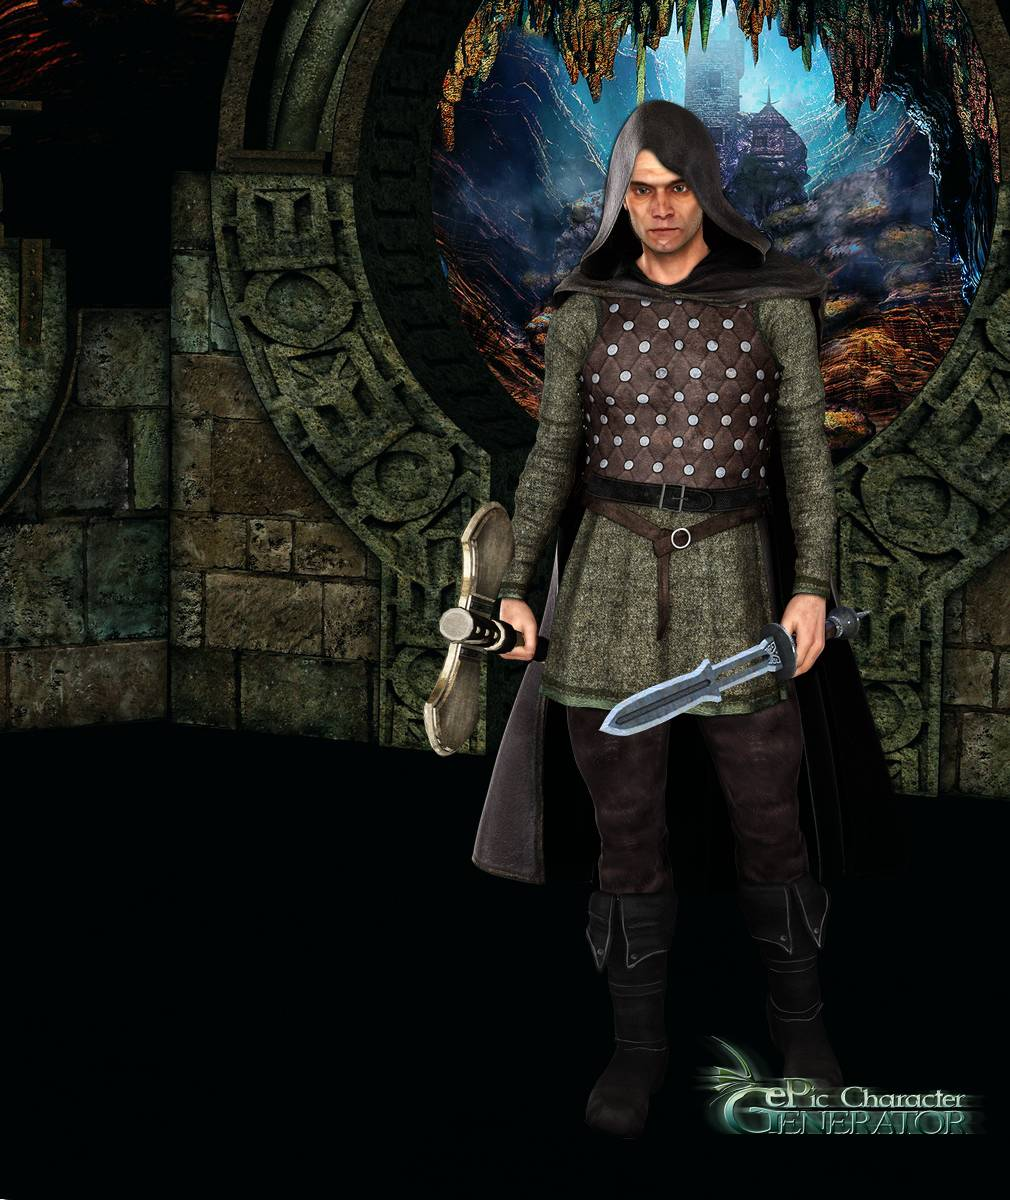 ePic Character Generator Season 2 Male Adventurer Screenshot 04